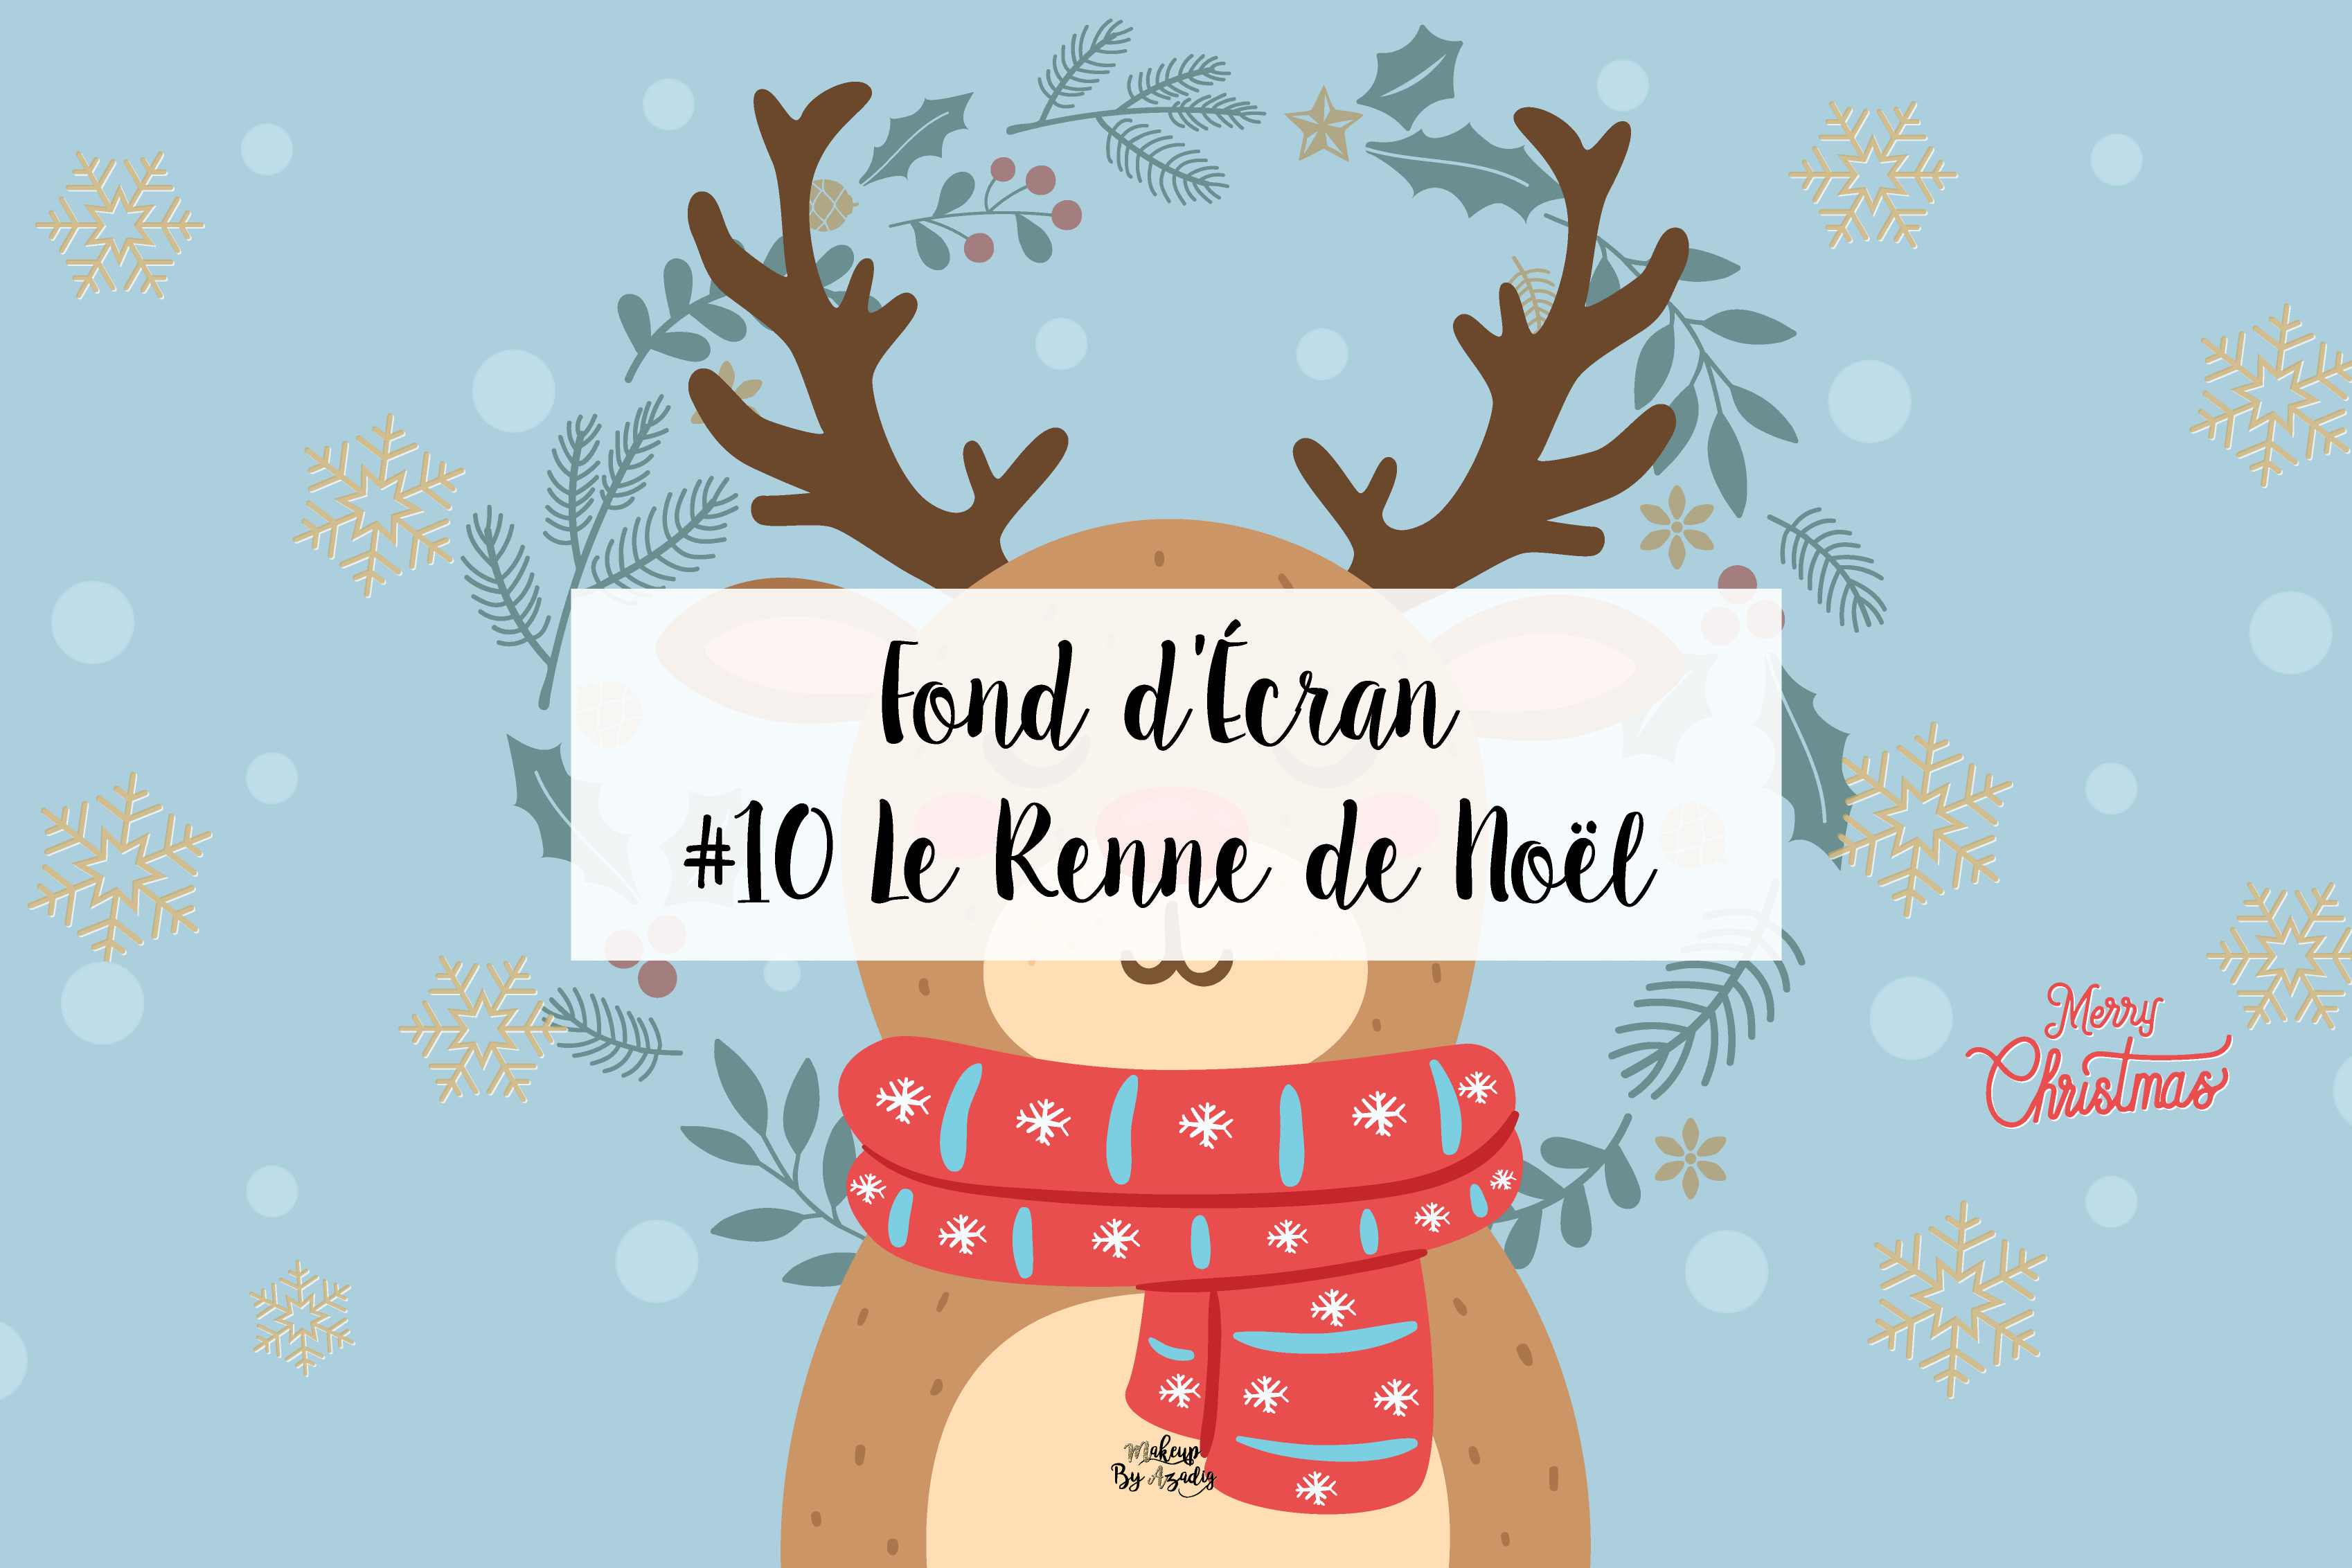 fond-decran-wallpaper-noel-renne-rudolph-disney-ordinateur-iphone-samsung-mac-macbook-imac-pc-makeupbyazadig-tendance